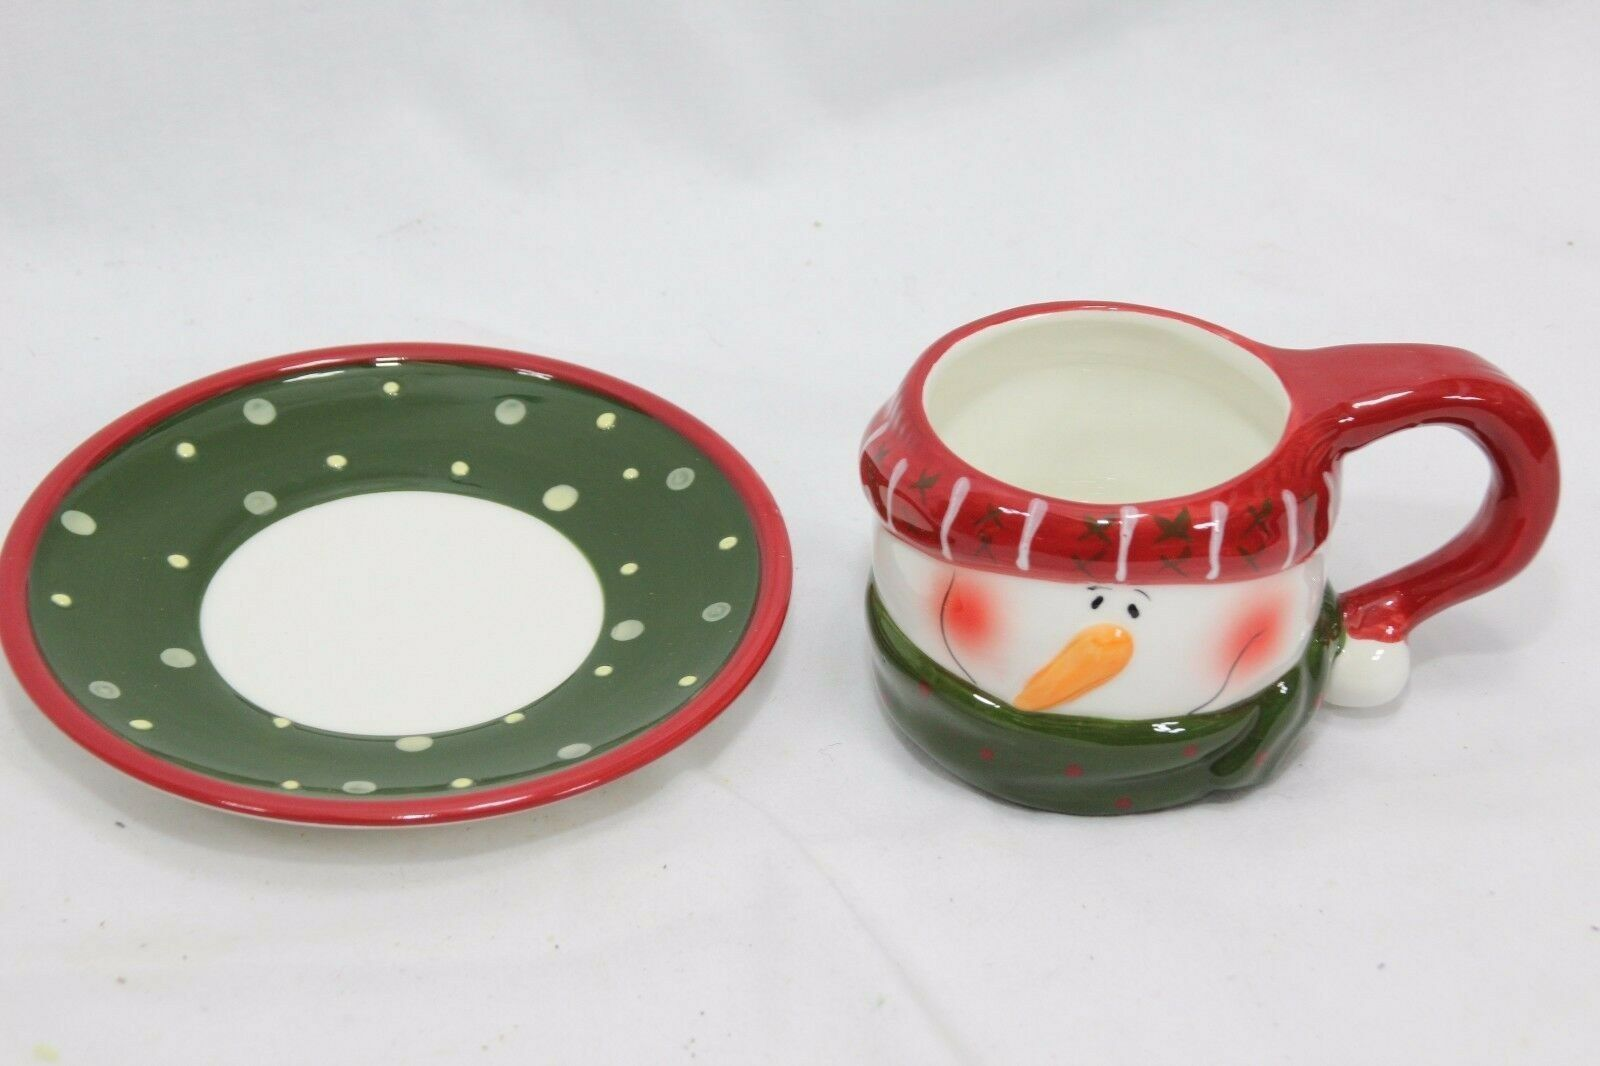 Snowman Xmas 4 Cups and 4 Saucers image 7